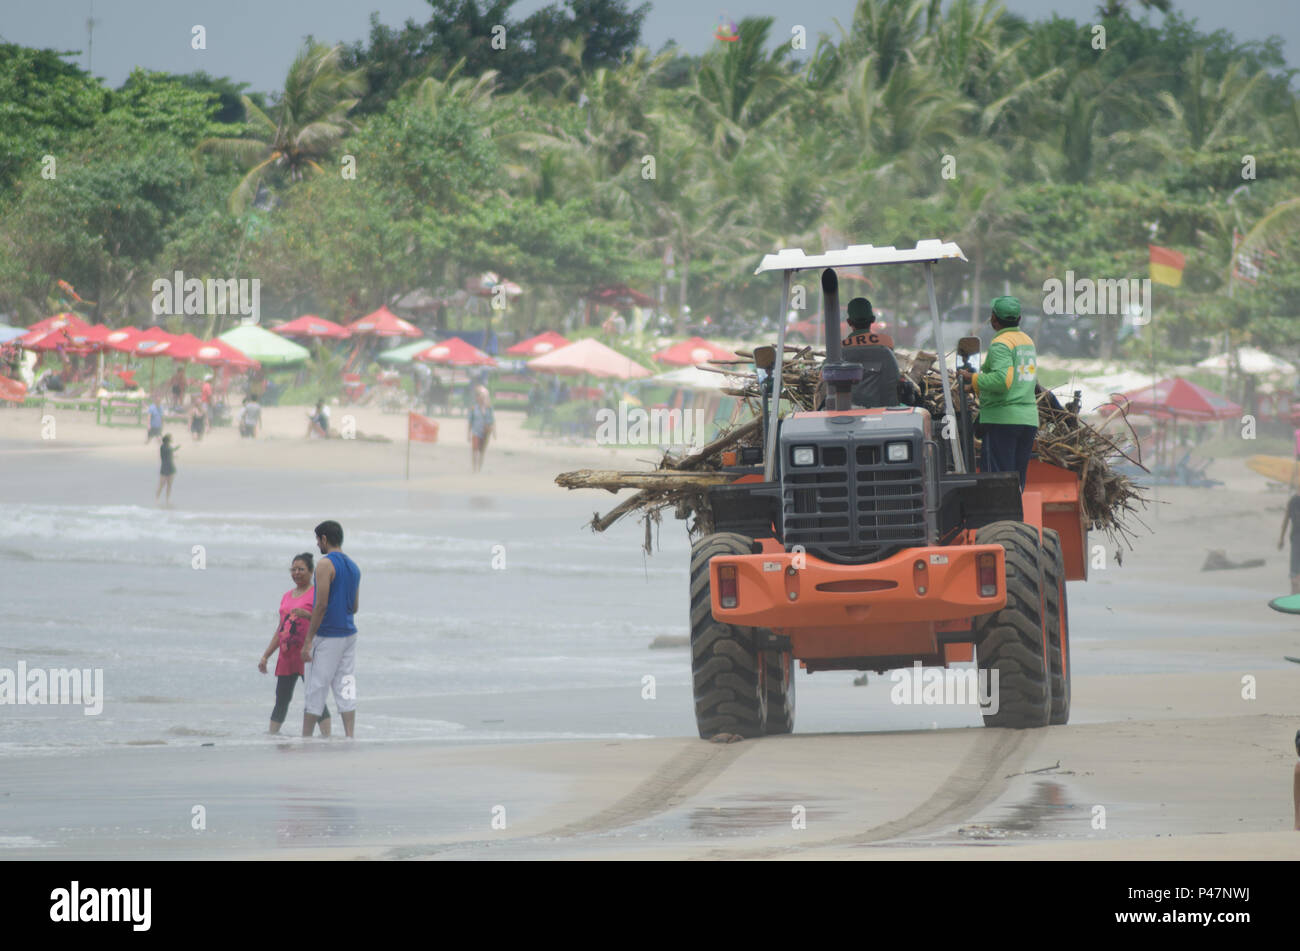 cleaning up trash in Kuta Beach, Bali Indonesia. Kuta is one of the most popular beaches in the world. - Stock Image